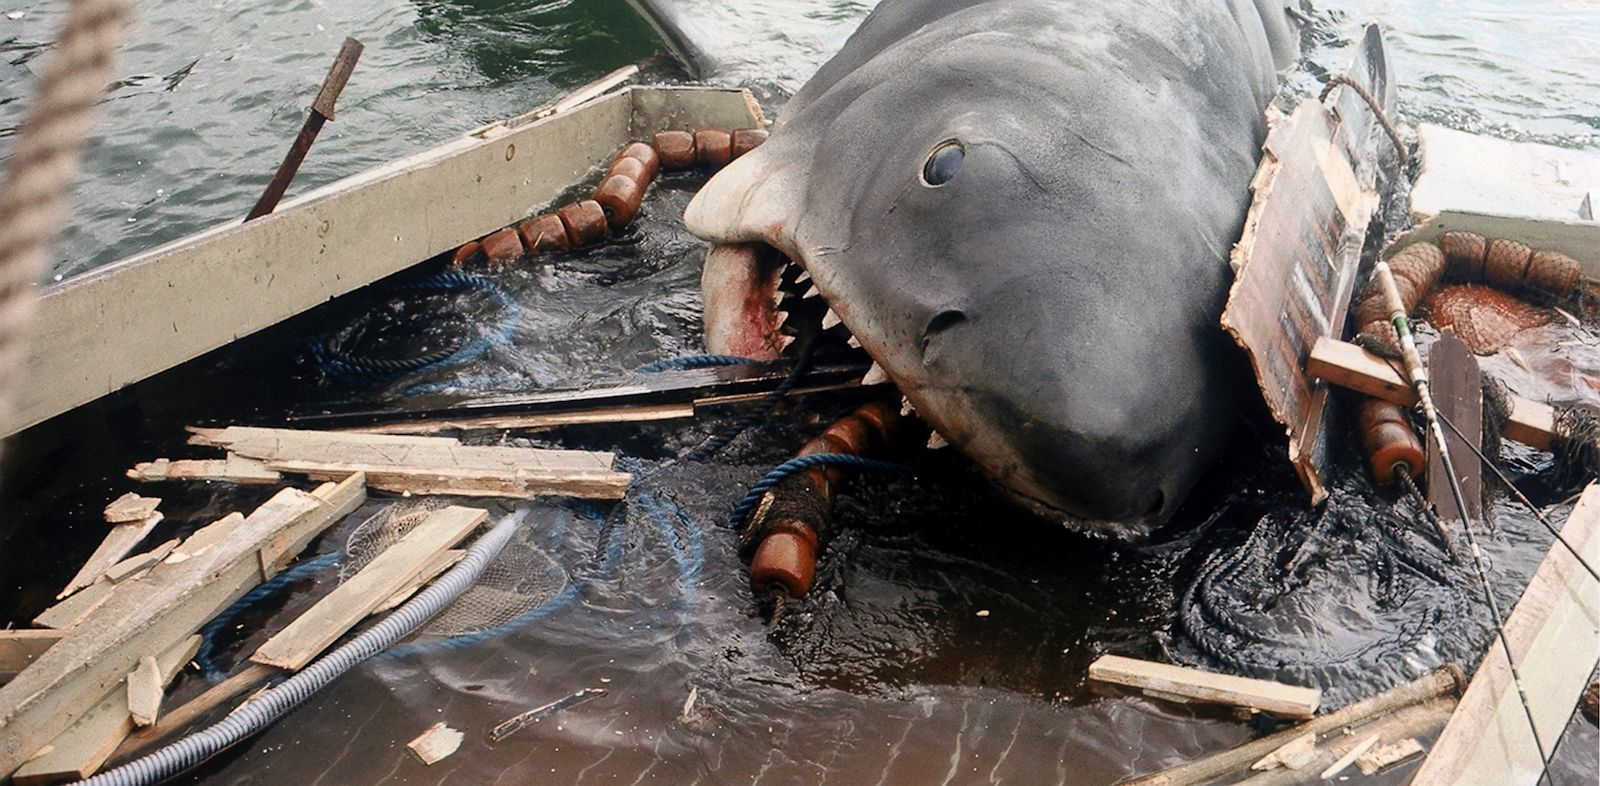 PHOTO: Shark from the film Jaws